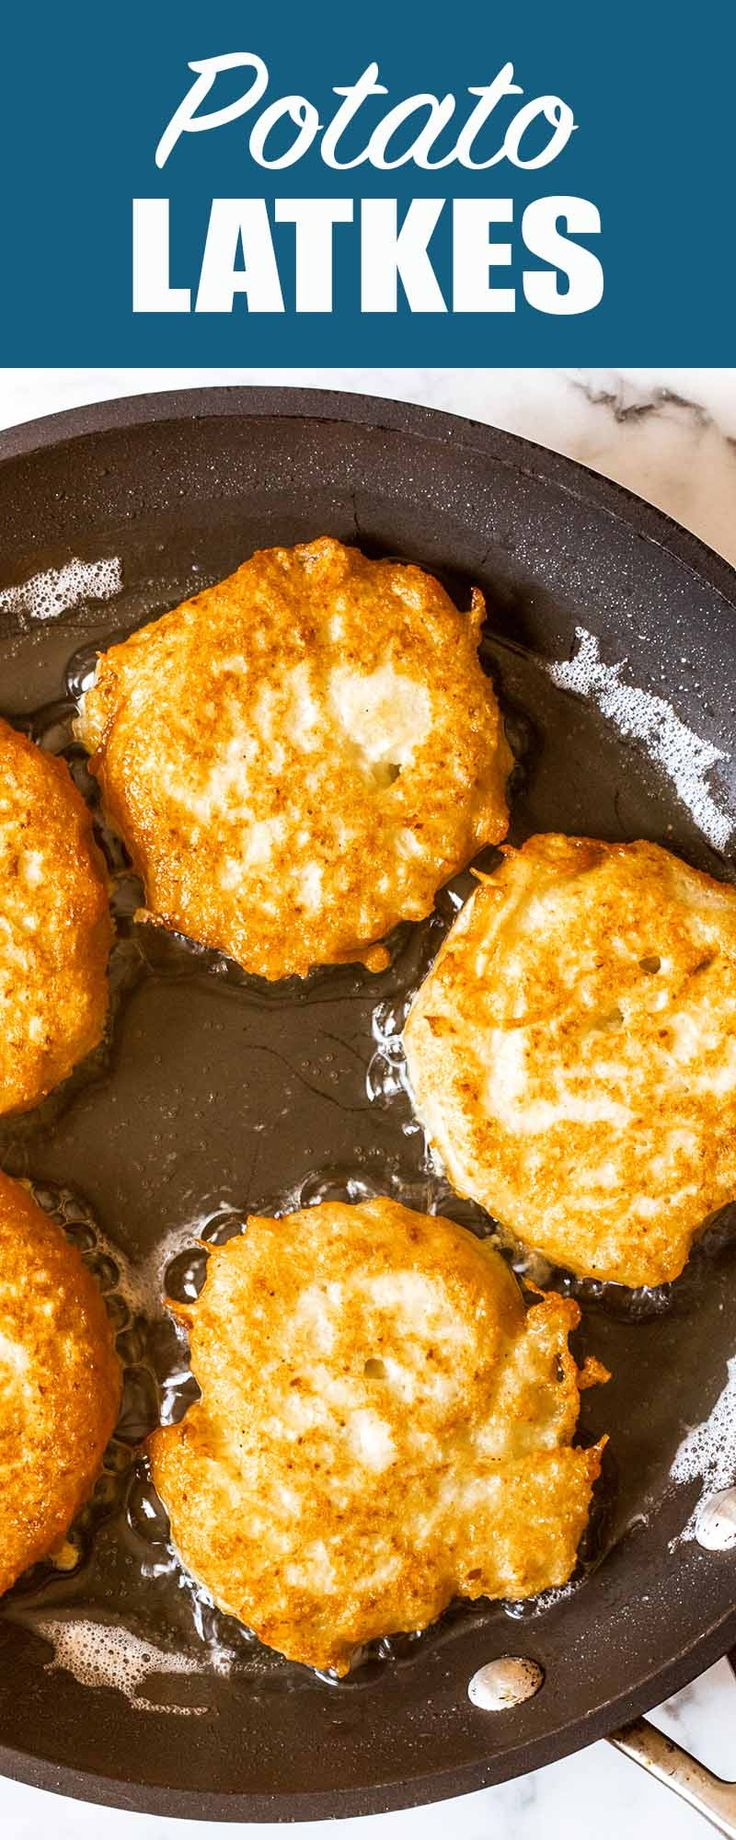 Potato Latkes! Our deli-style version is made in the food-processor. Crispy on the outside and creamy on the inside. Serve hot with plenty of sour cream and applesauce! #Latkes #Potato #Hanukkah #JewishFood